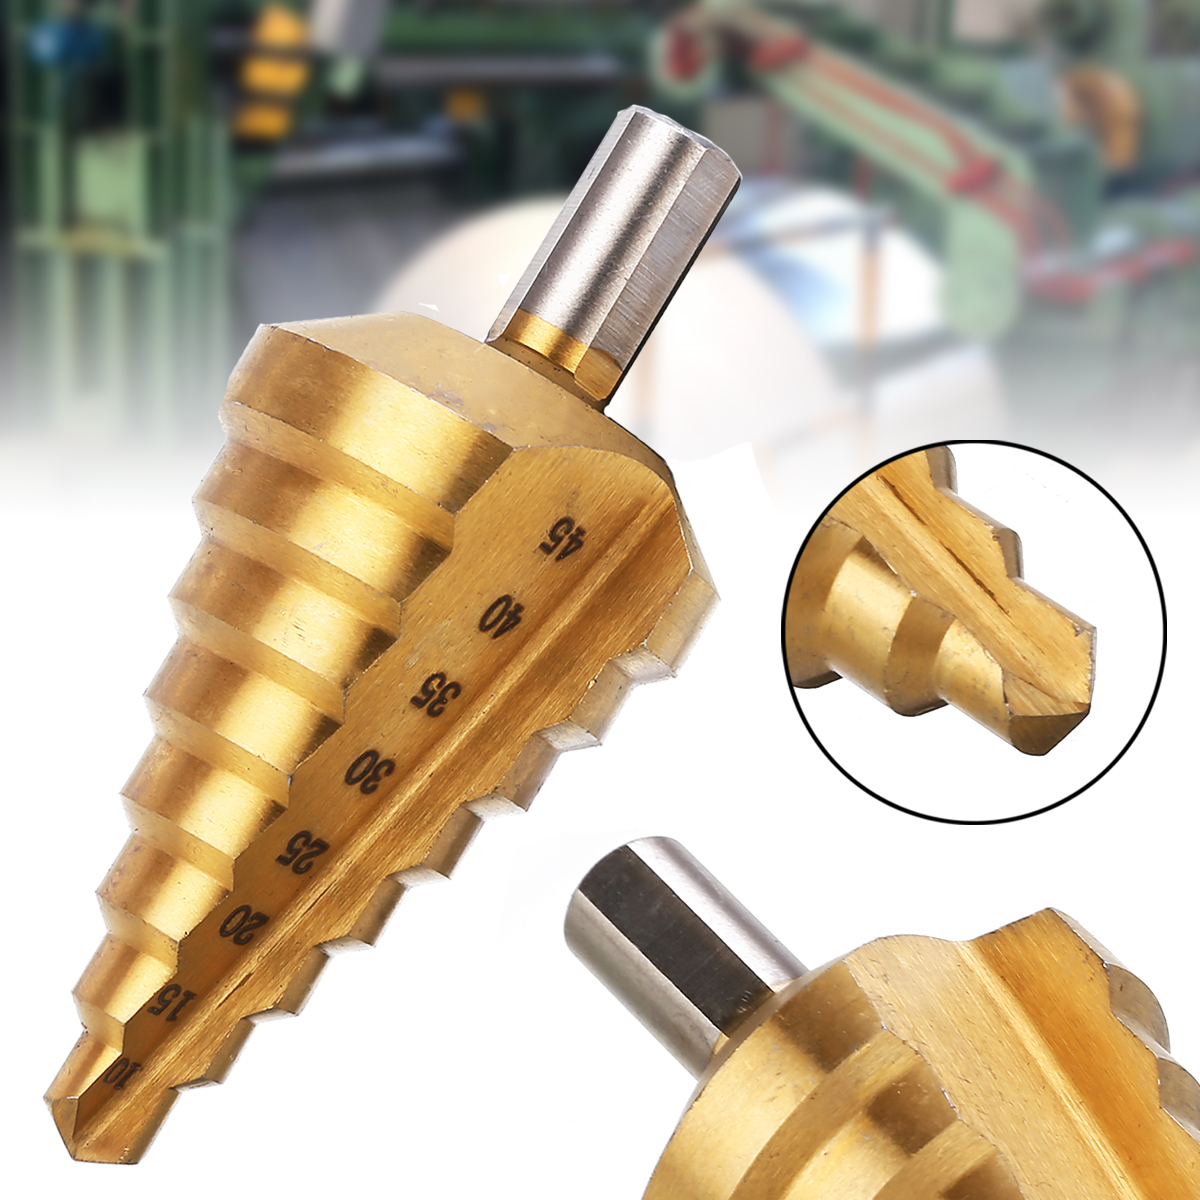 1Pc HSS Step Drill Bit 10/15/20/25/30/35/40/45mm Tin Stepped Drill Peeling Conical Drill Bit Wood Hole Cutter Cone Drill Tools